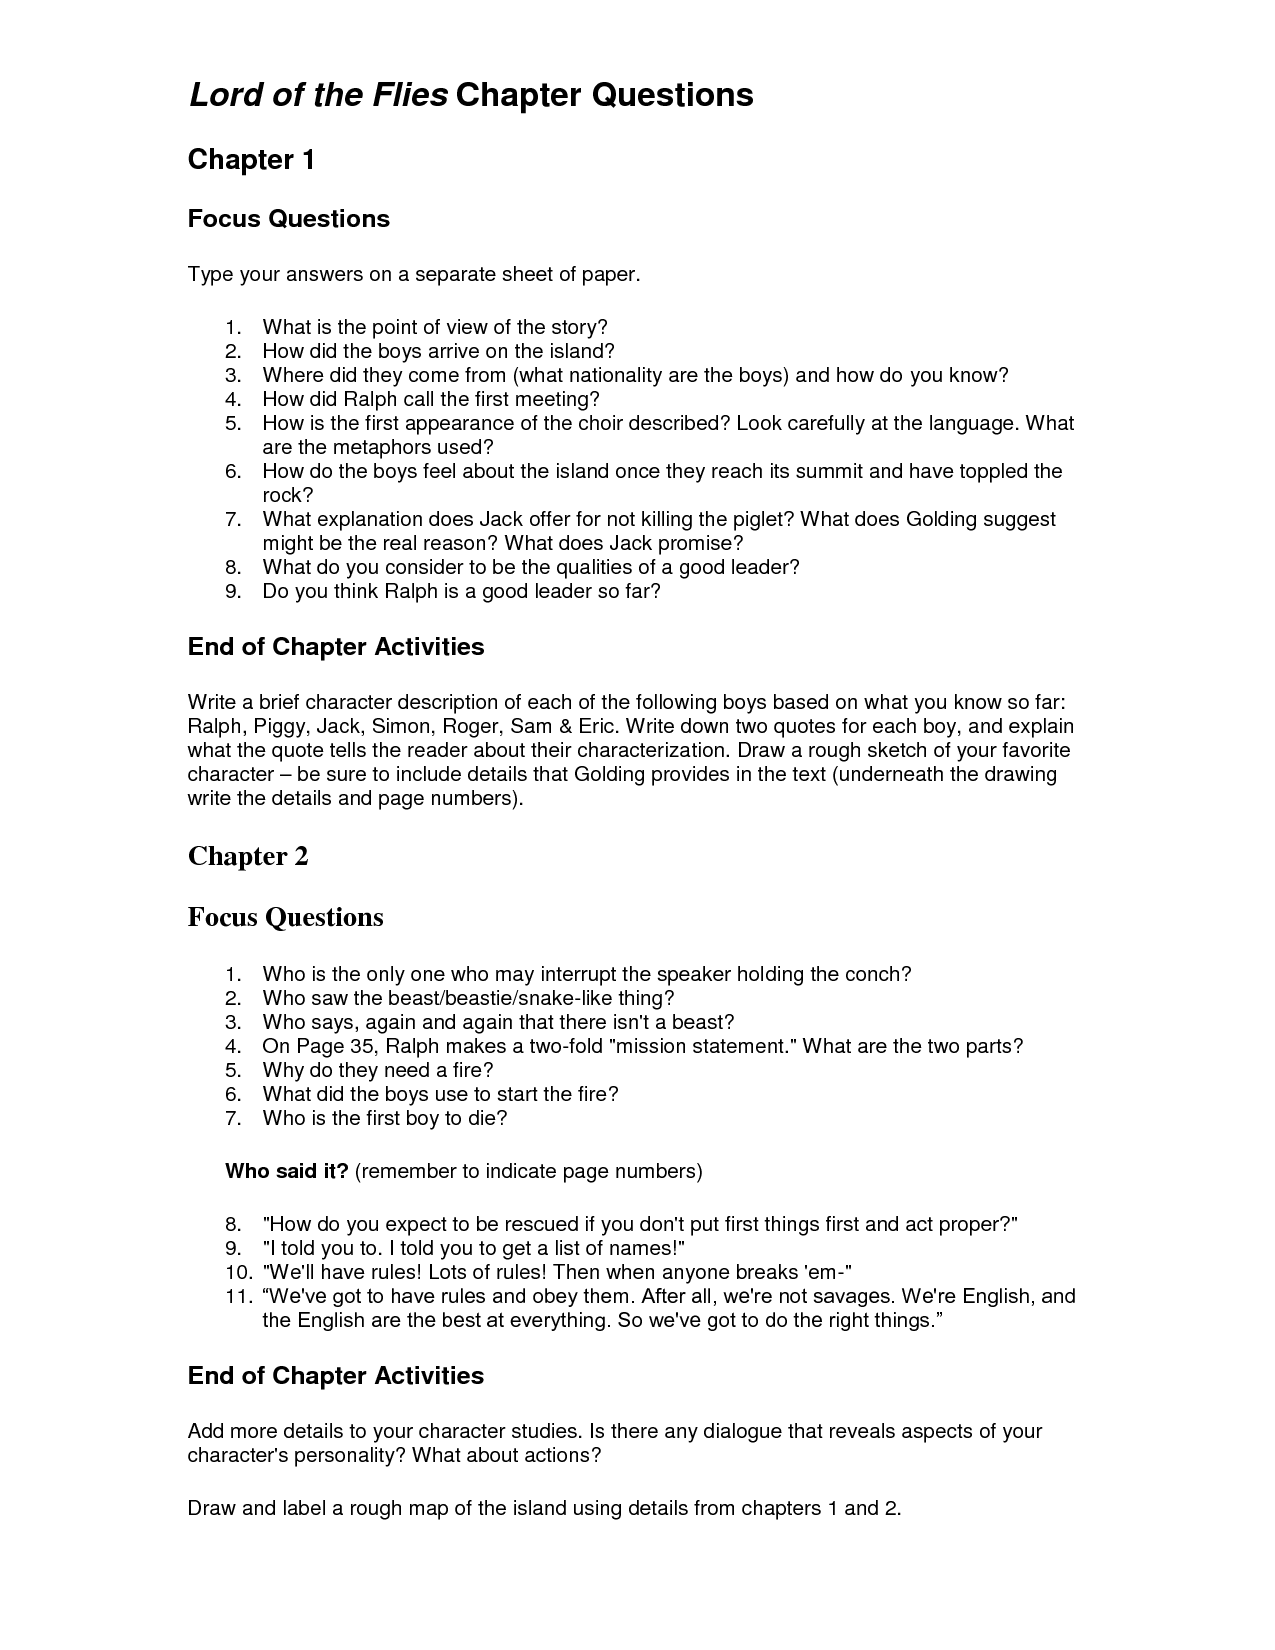 essay questions for lord of the flies essay topics lord of the flies quotes page numbers quotesgram essay questions